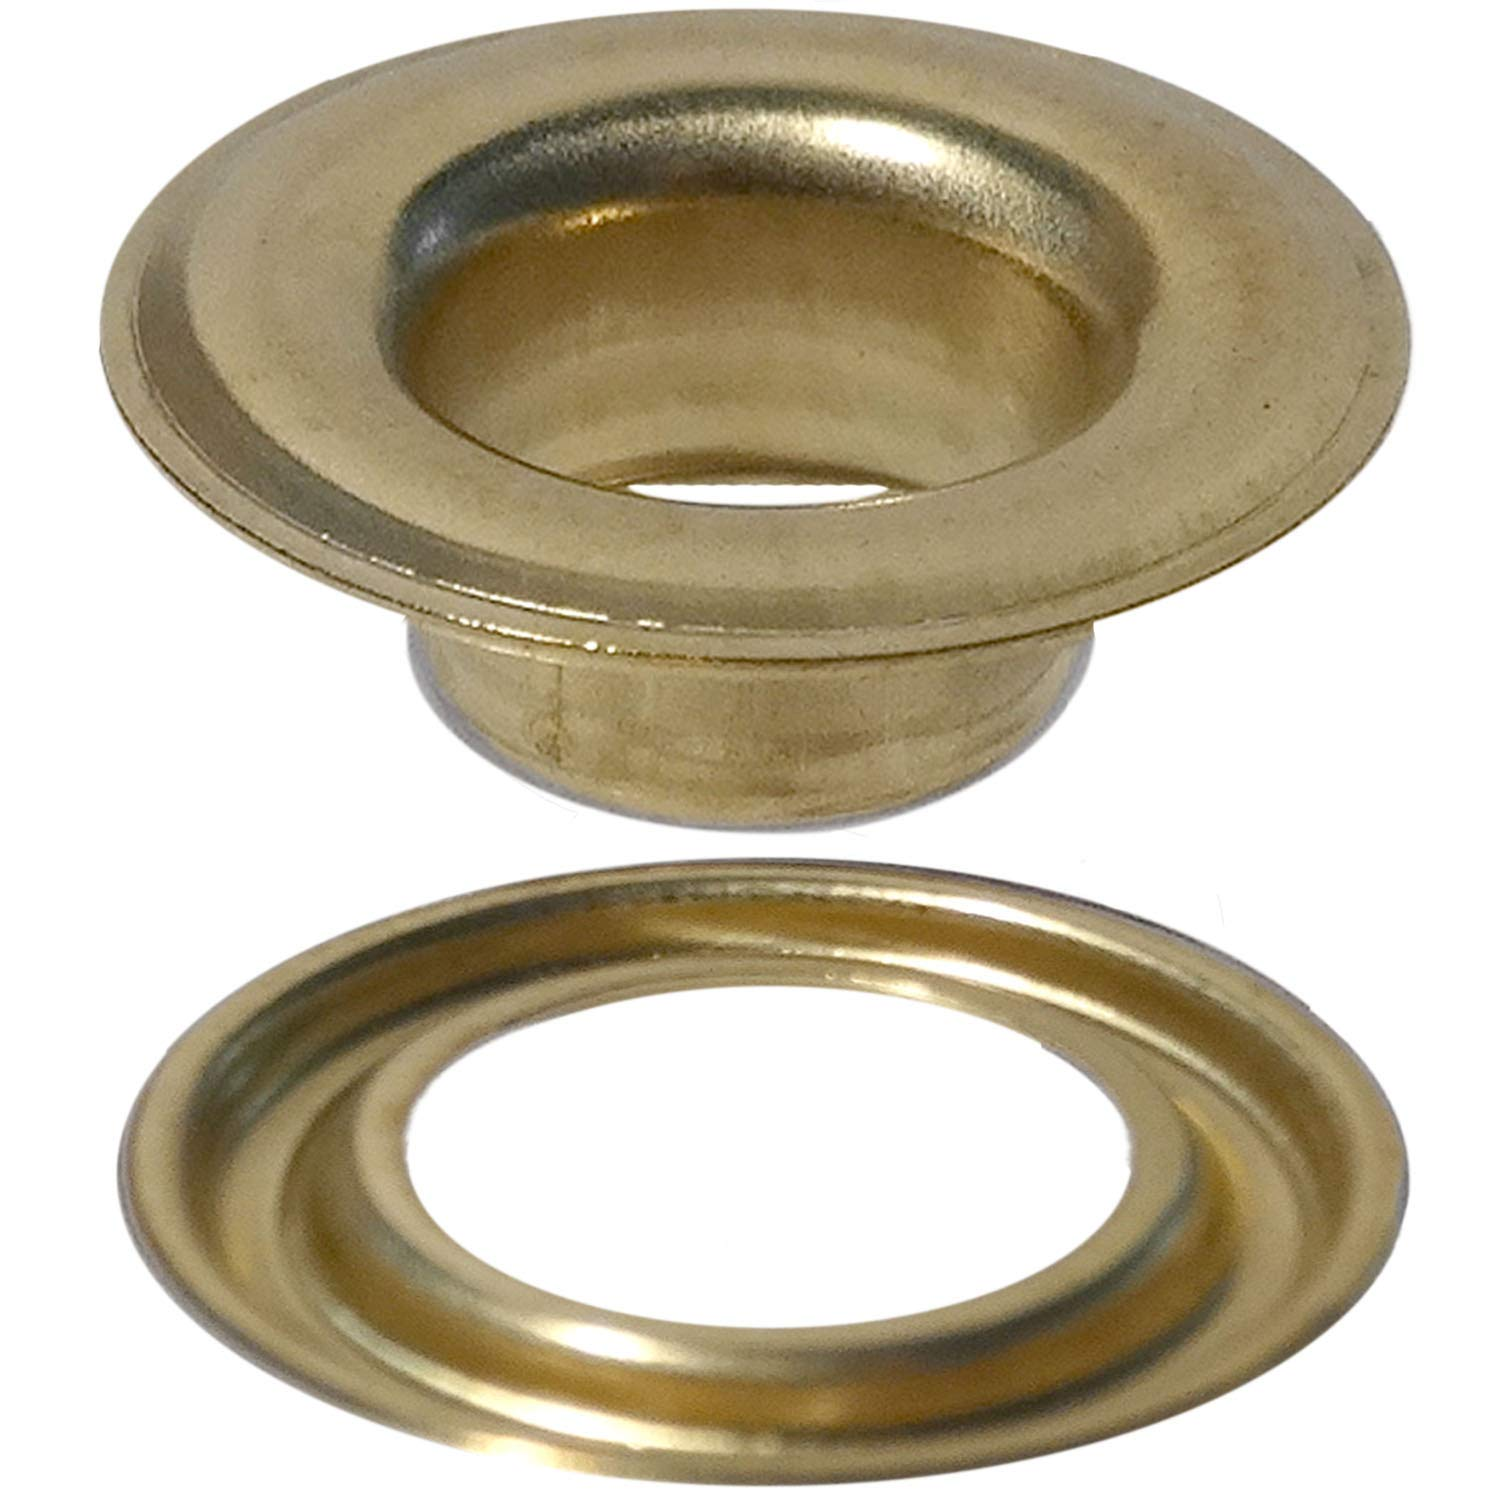 Durable Stimpson Self-Piercing Grommet and Washer Brass Reliable 2,400 Pieces of Each Heavy-Duty #3 Set